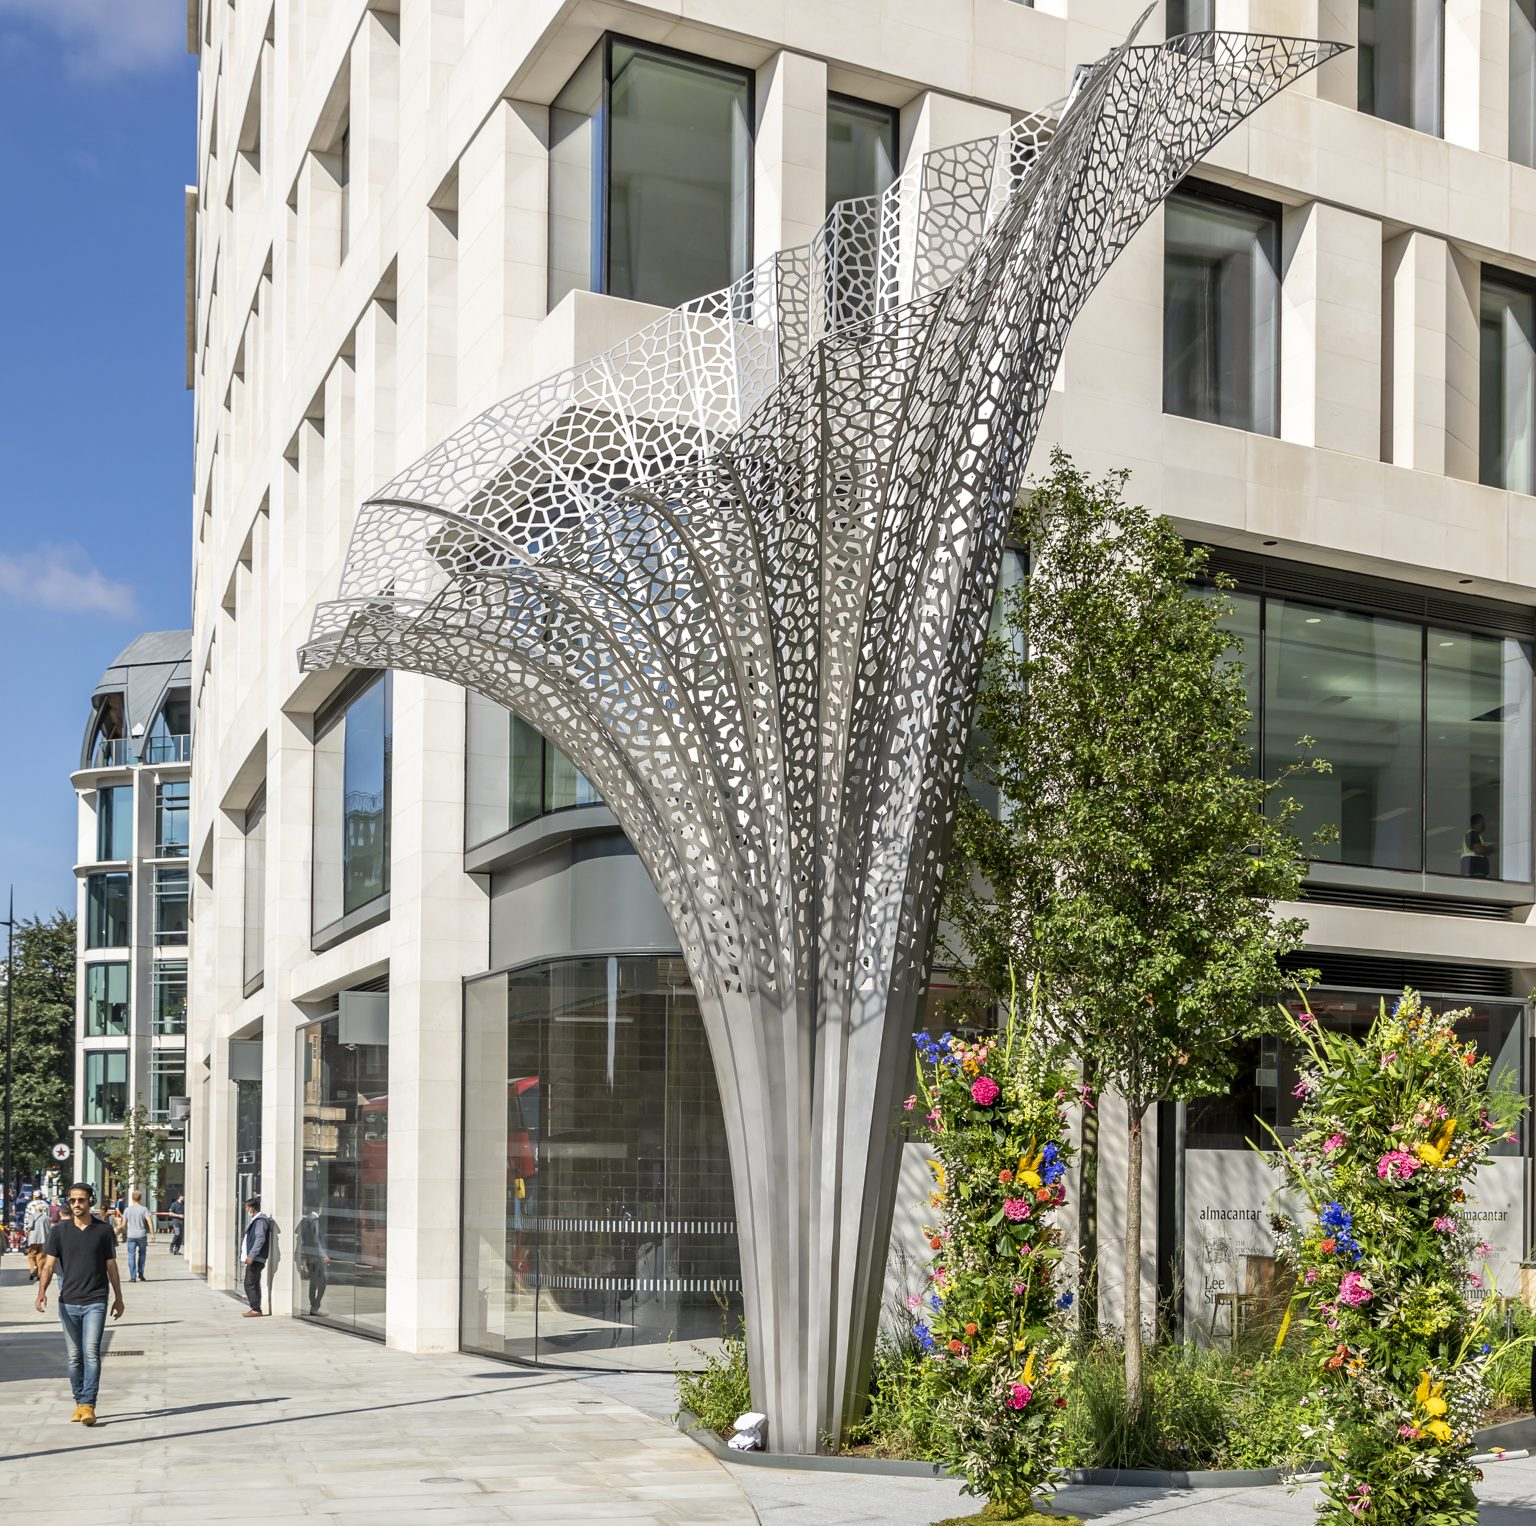 Almacantar Reveals New Sculpture at Marble Arch Place